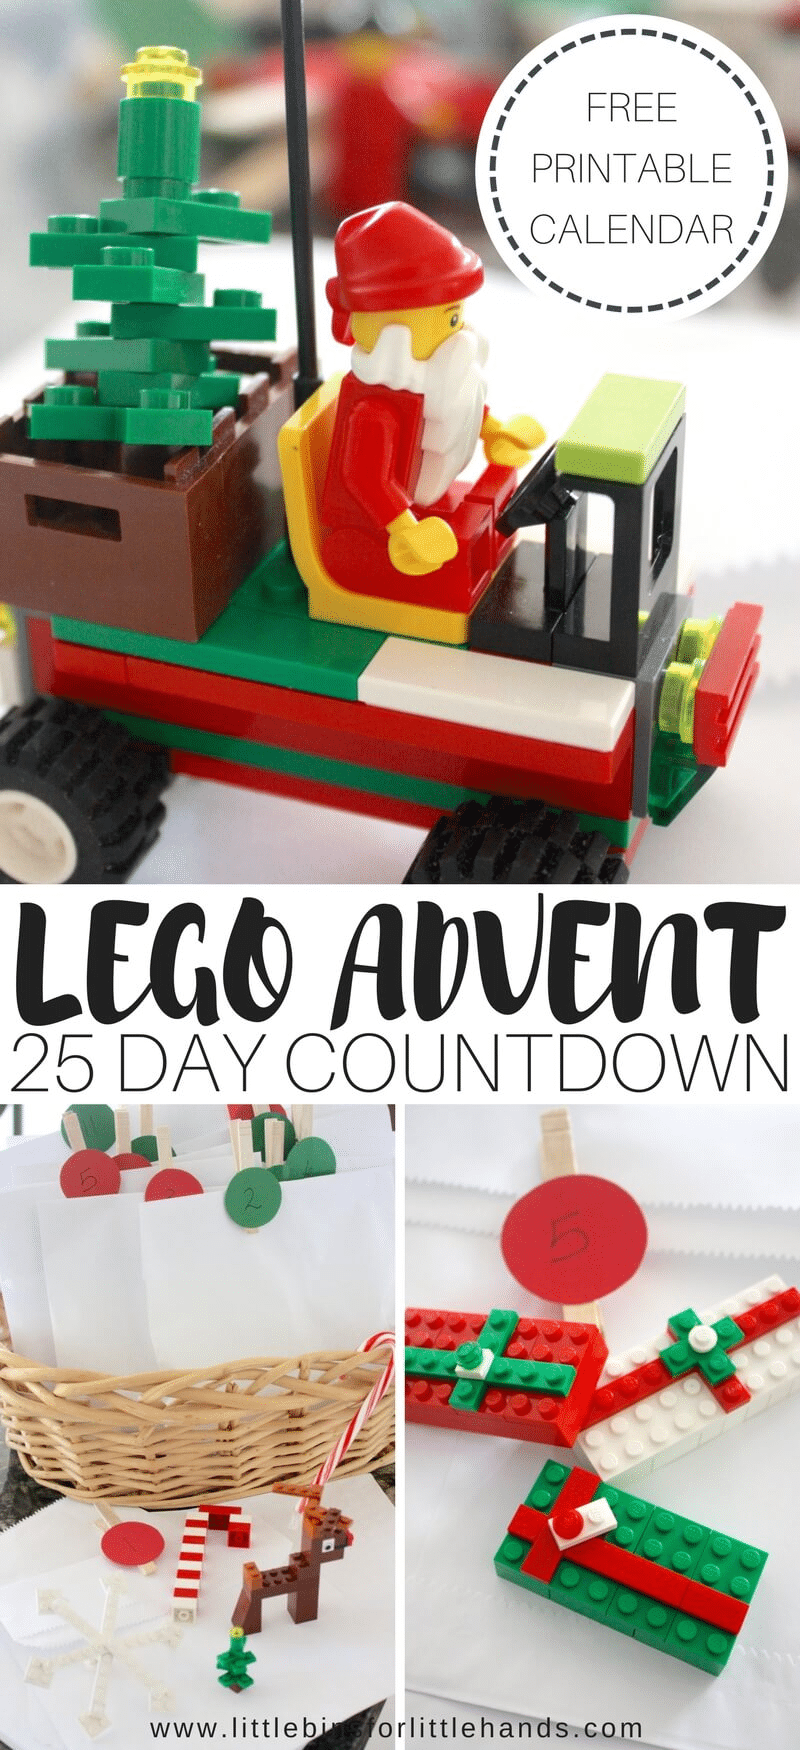 a collage of legos and paper bags in a basket with title text reading Lego Advent 25 Day Countdown